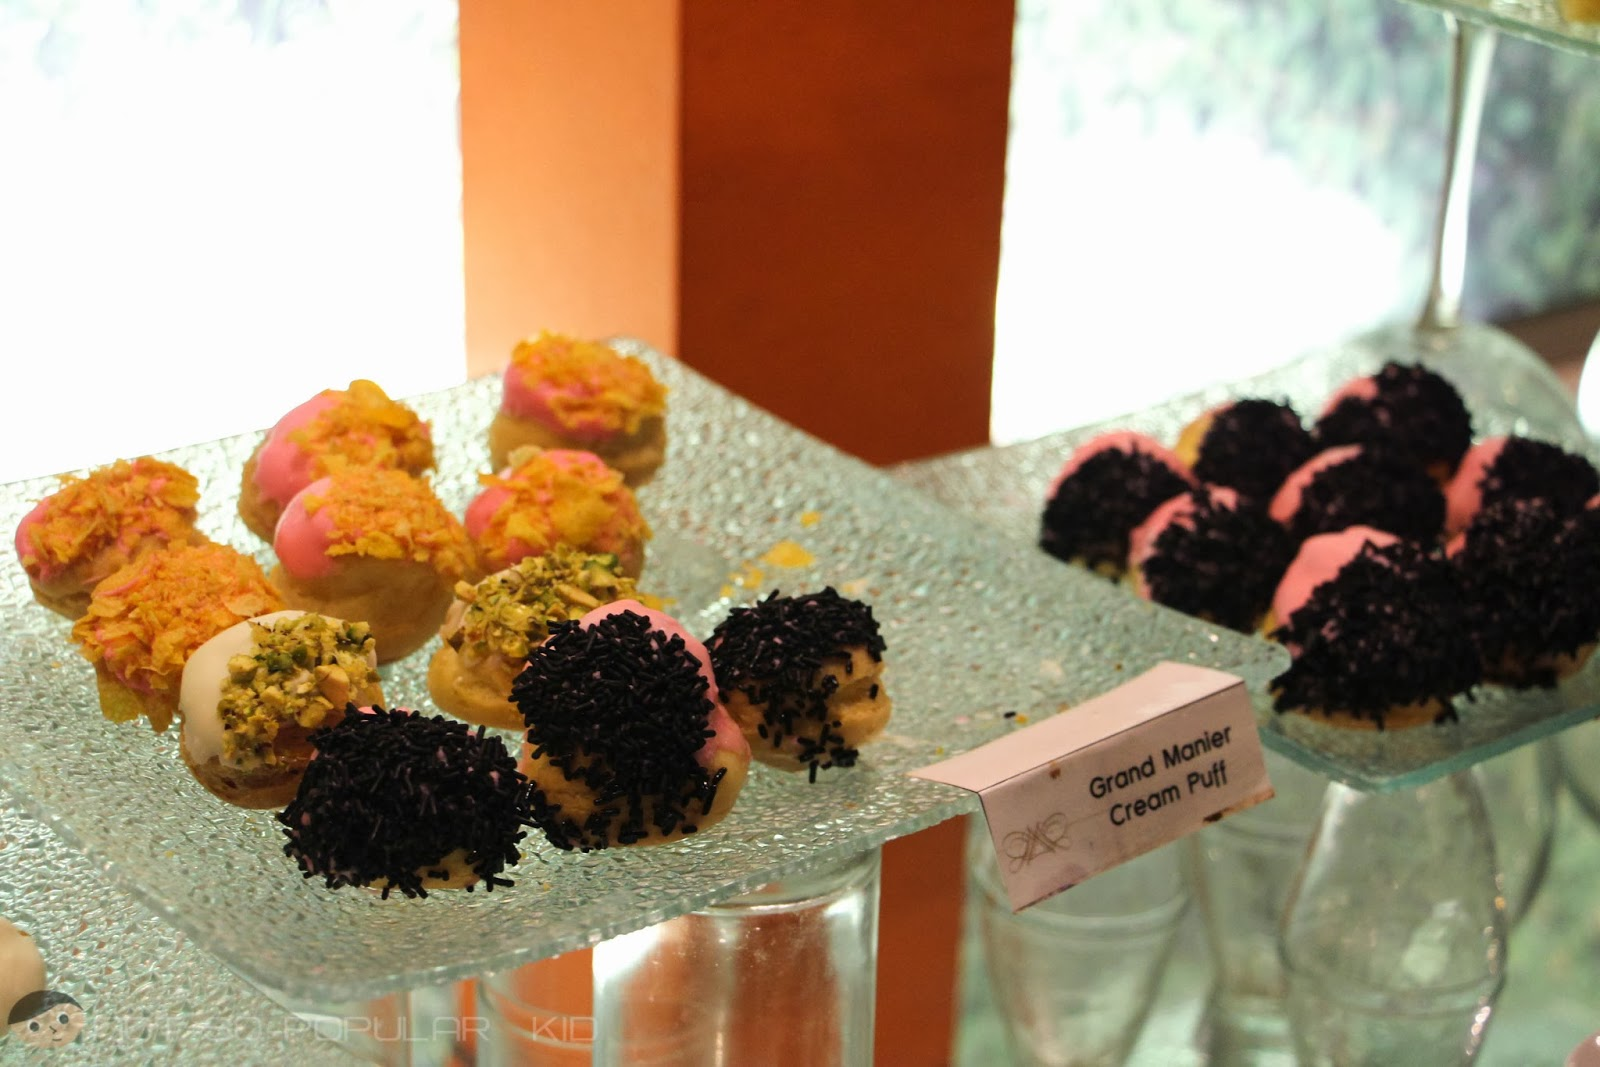 Dessert Bar Selection of Midas - Grand Manier Cream Puff